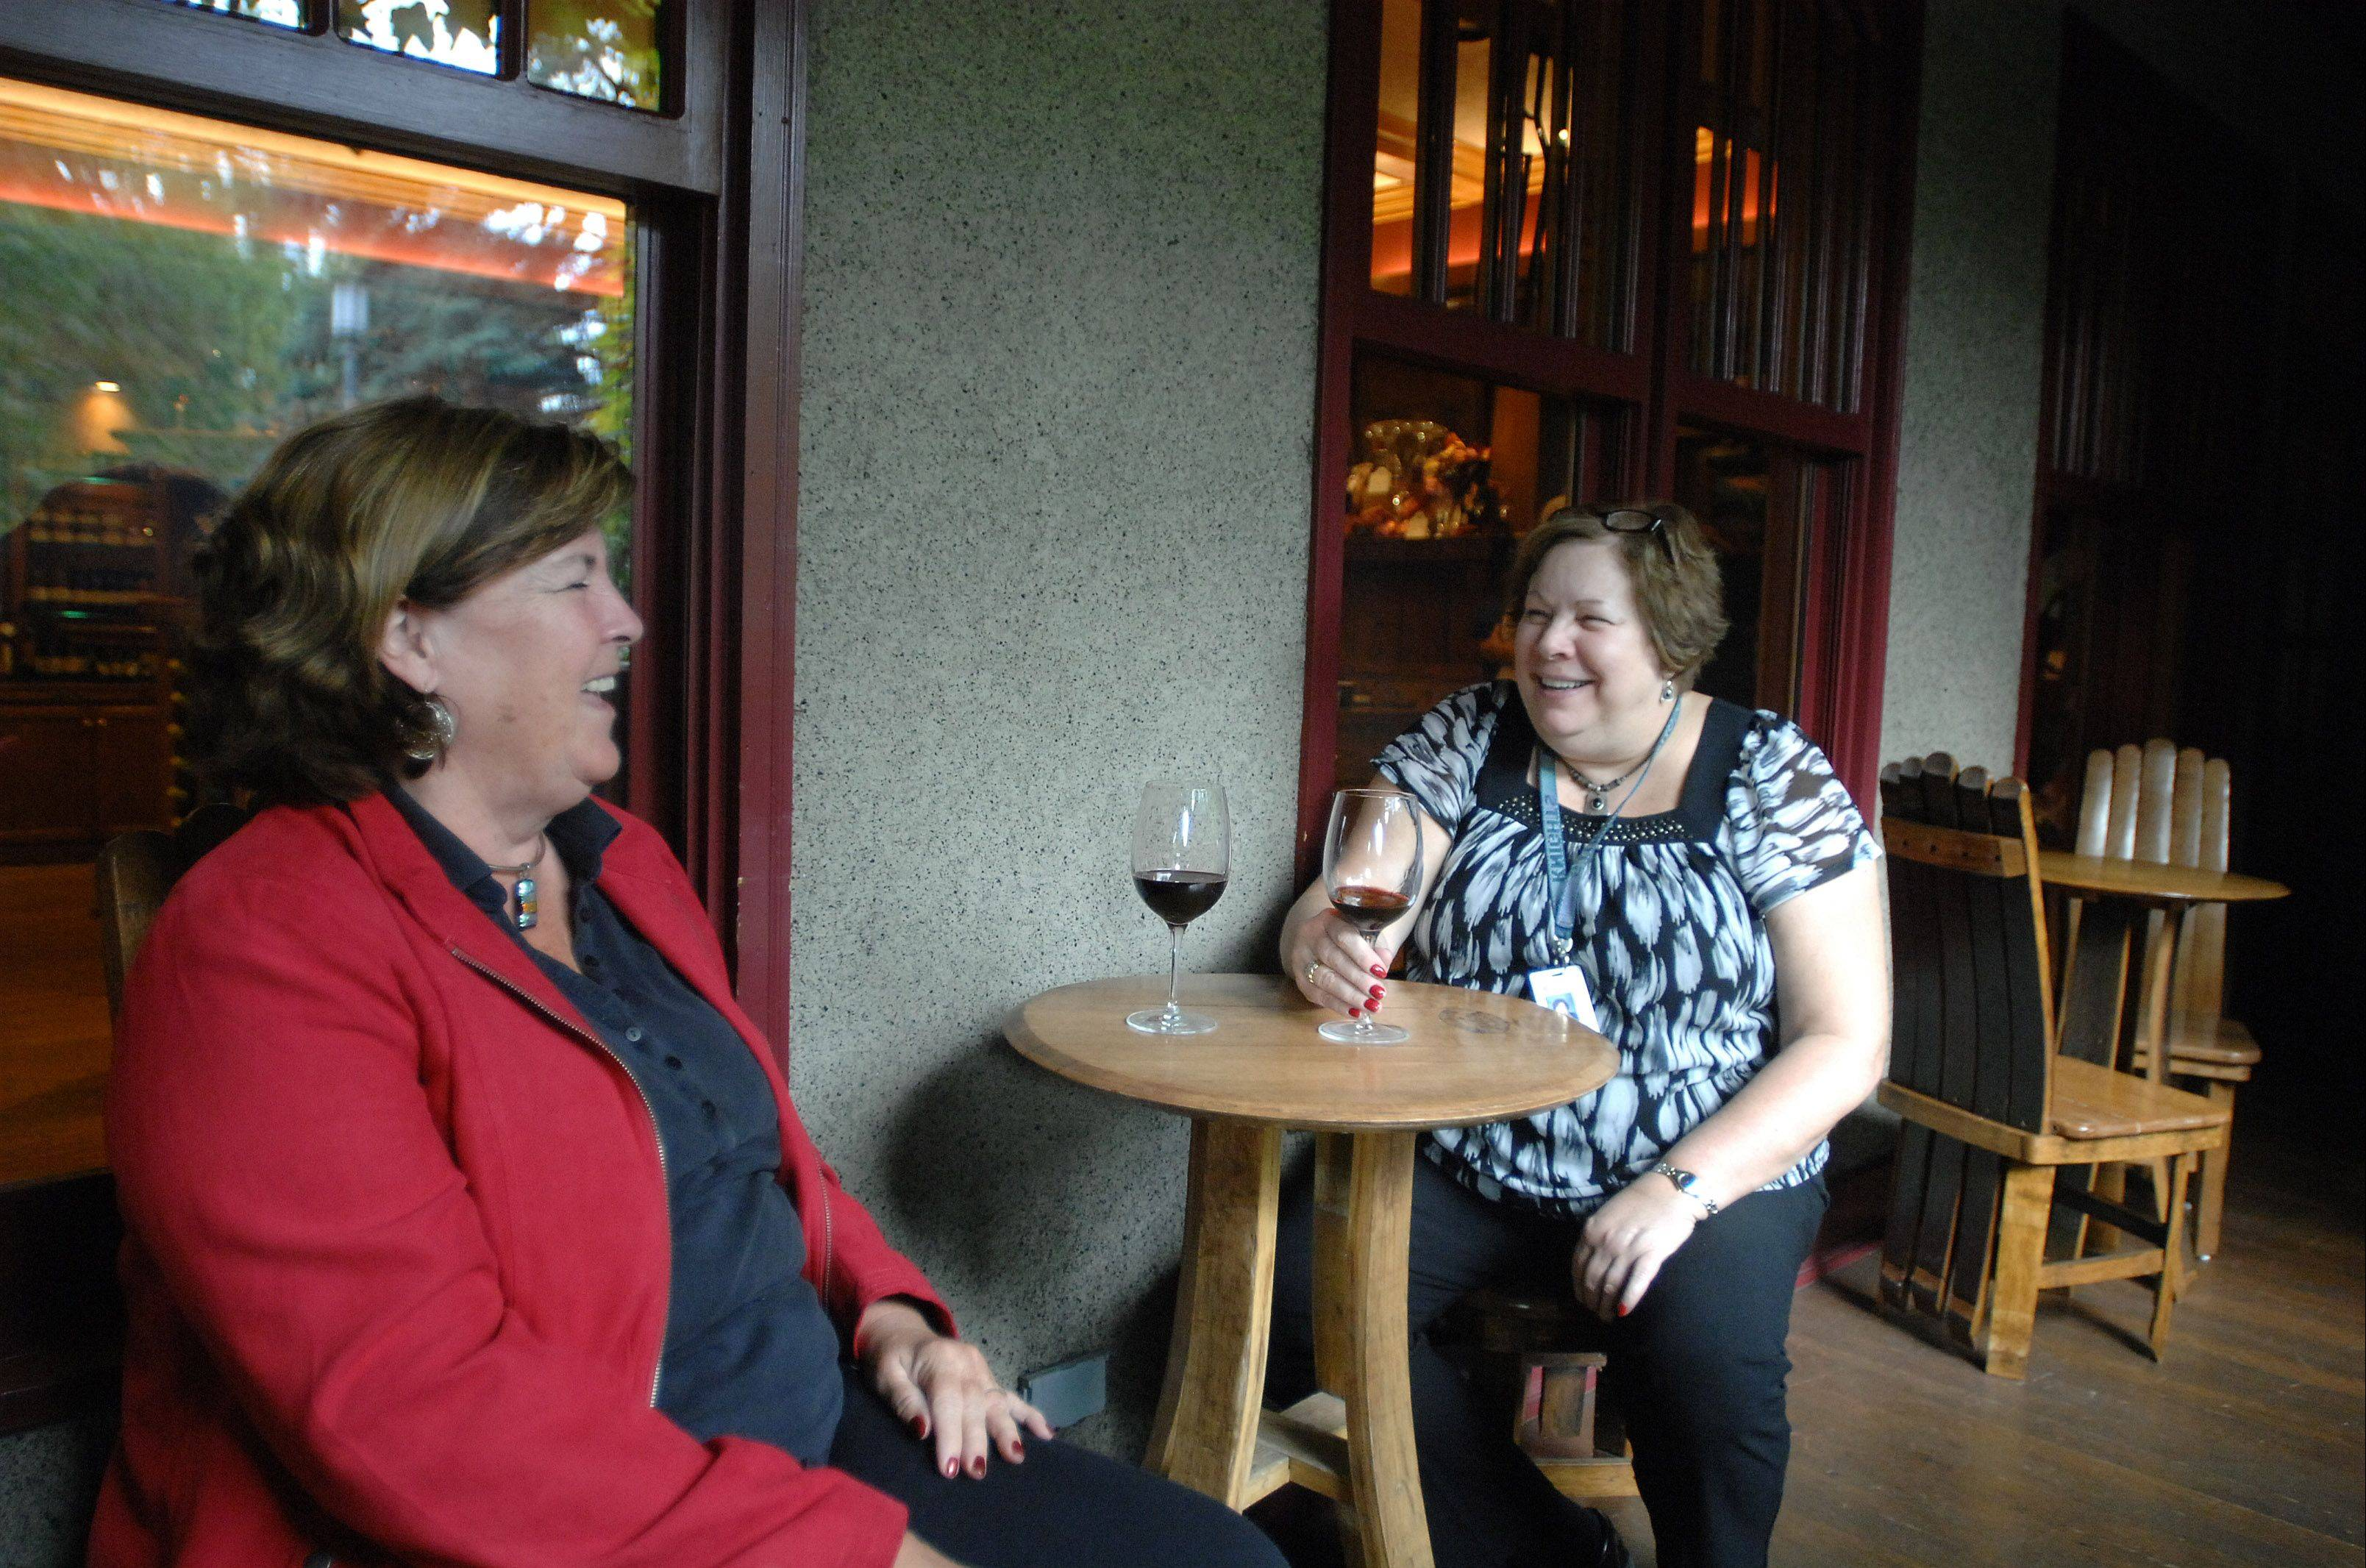 Maggie Roland of Wheeling, left, and Jo Holtby of Arlington Heights have a glass of wine at the Lynfred Winery in Roselle after attending the Ryder Cup. The winery has seen a substantial boost in business from the event.